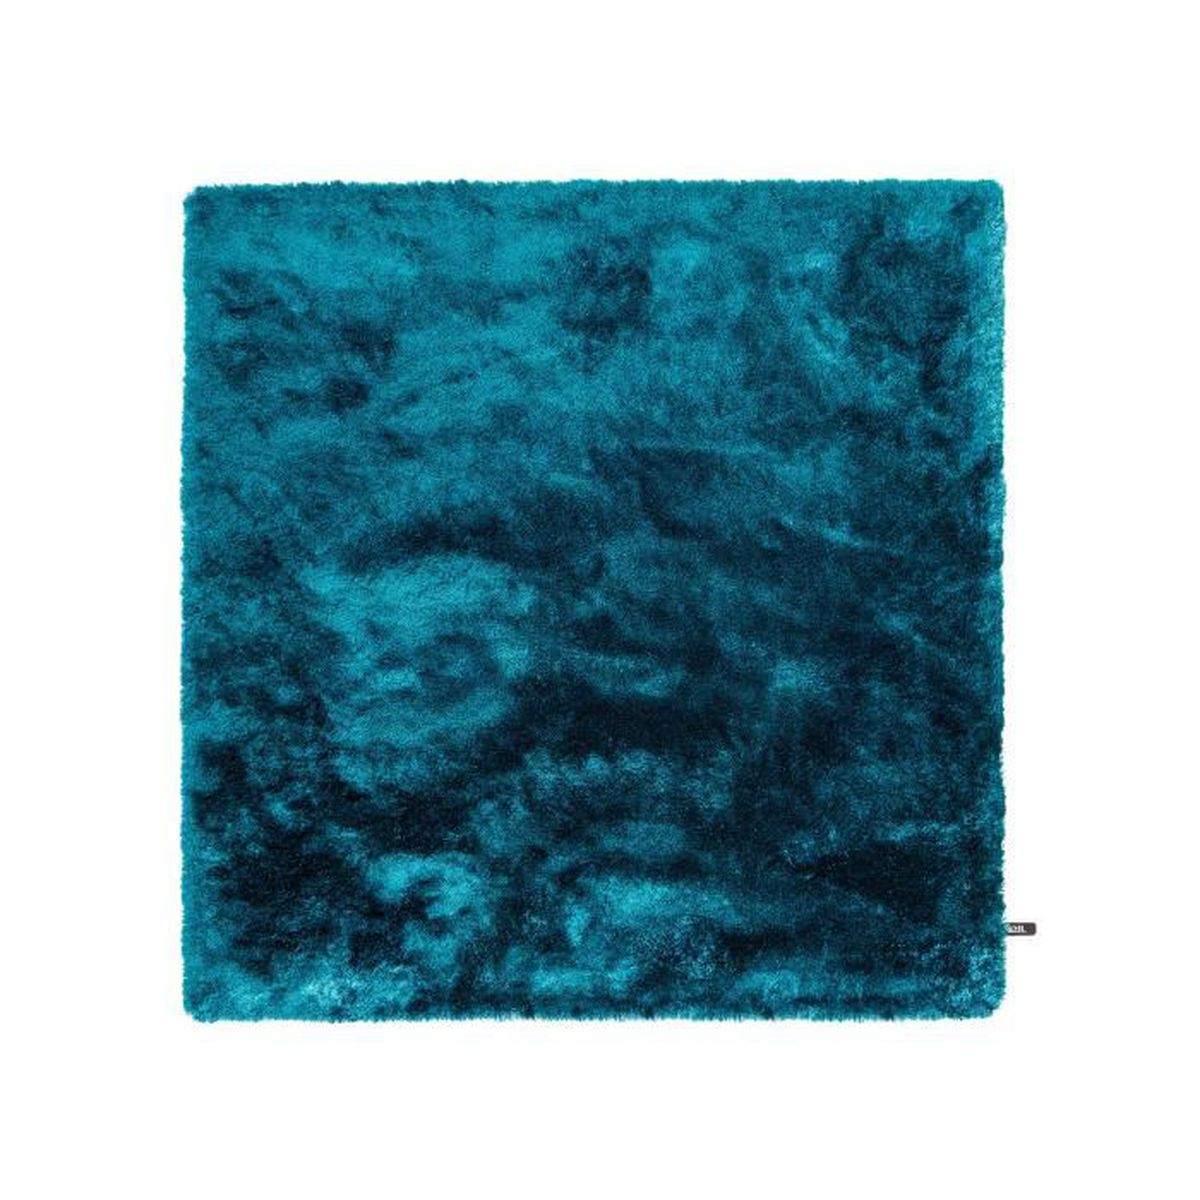 tapis shaggy poils longs whisper turquoise 150x150 cm tapis doux pour salon achat vente. Black Bedroom Furniture Sets. Home Design Ideas